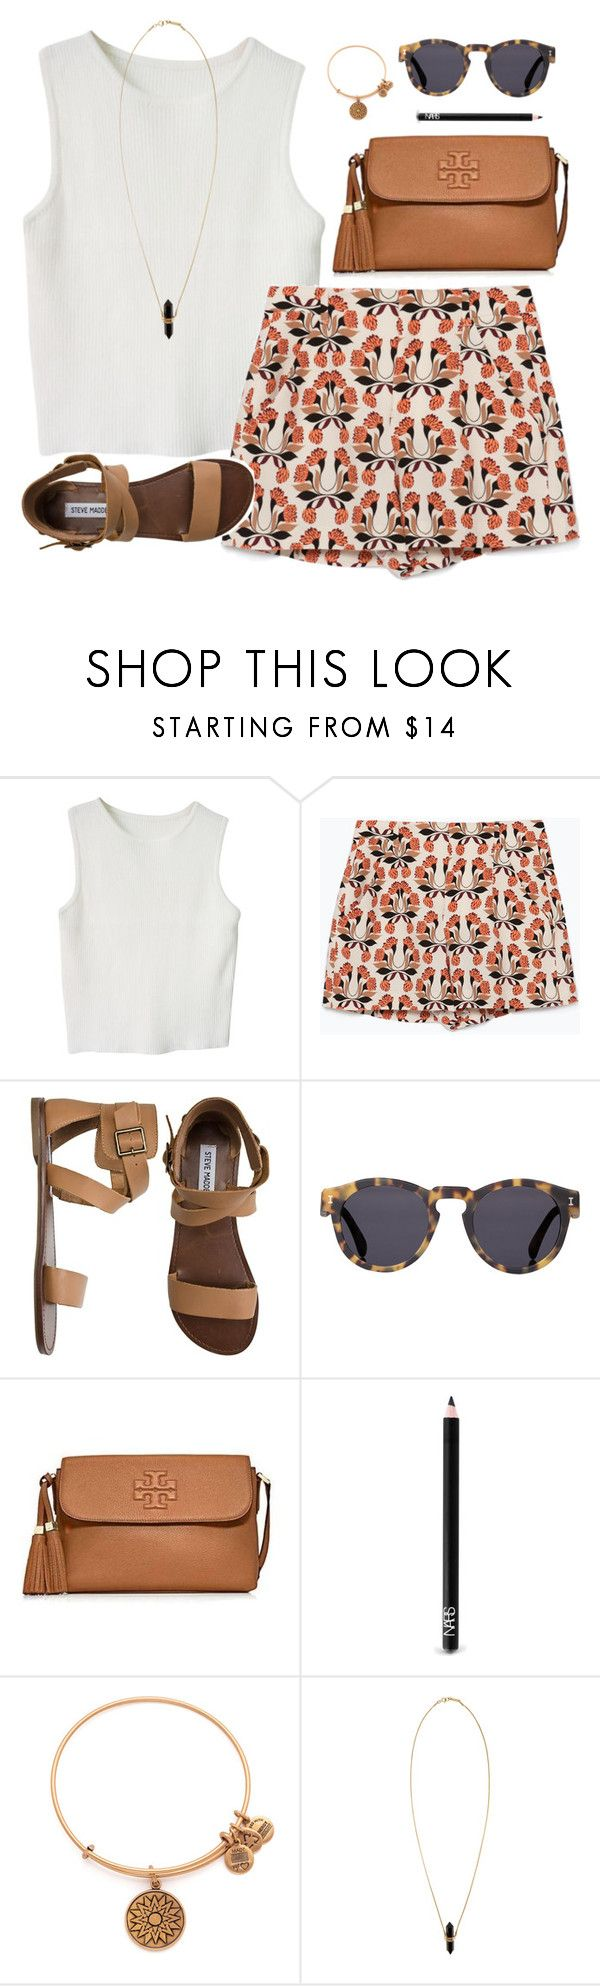 """warm colors hot weather"" by classically-preppy ❤ liked on Polyvore featuring Zara, Steve Madden, Illesteva, Tory Burch, NARS Cosmetics, Alex and Ani and Isabel Marant"